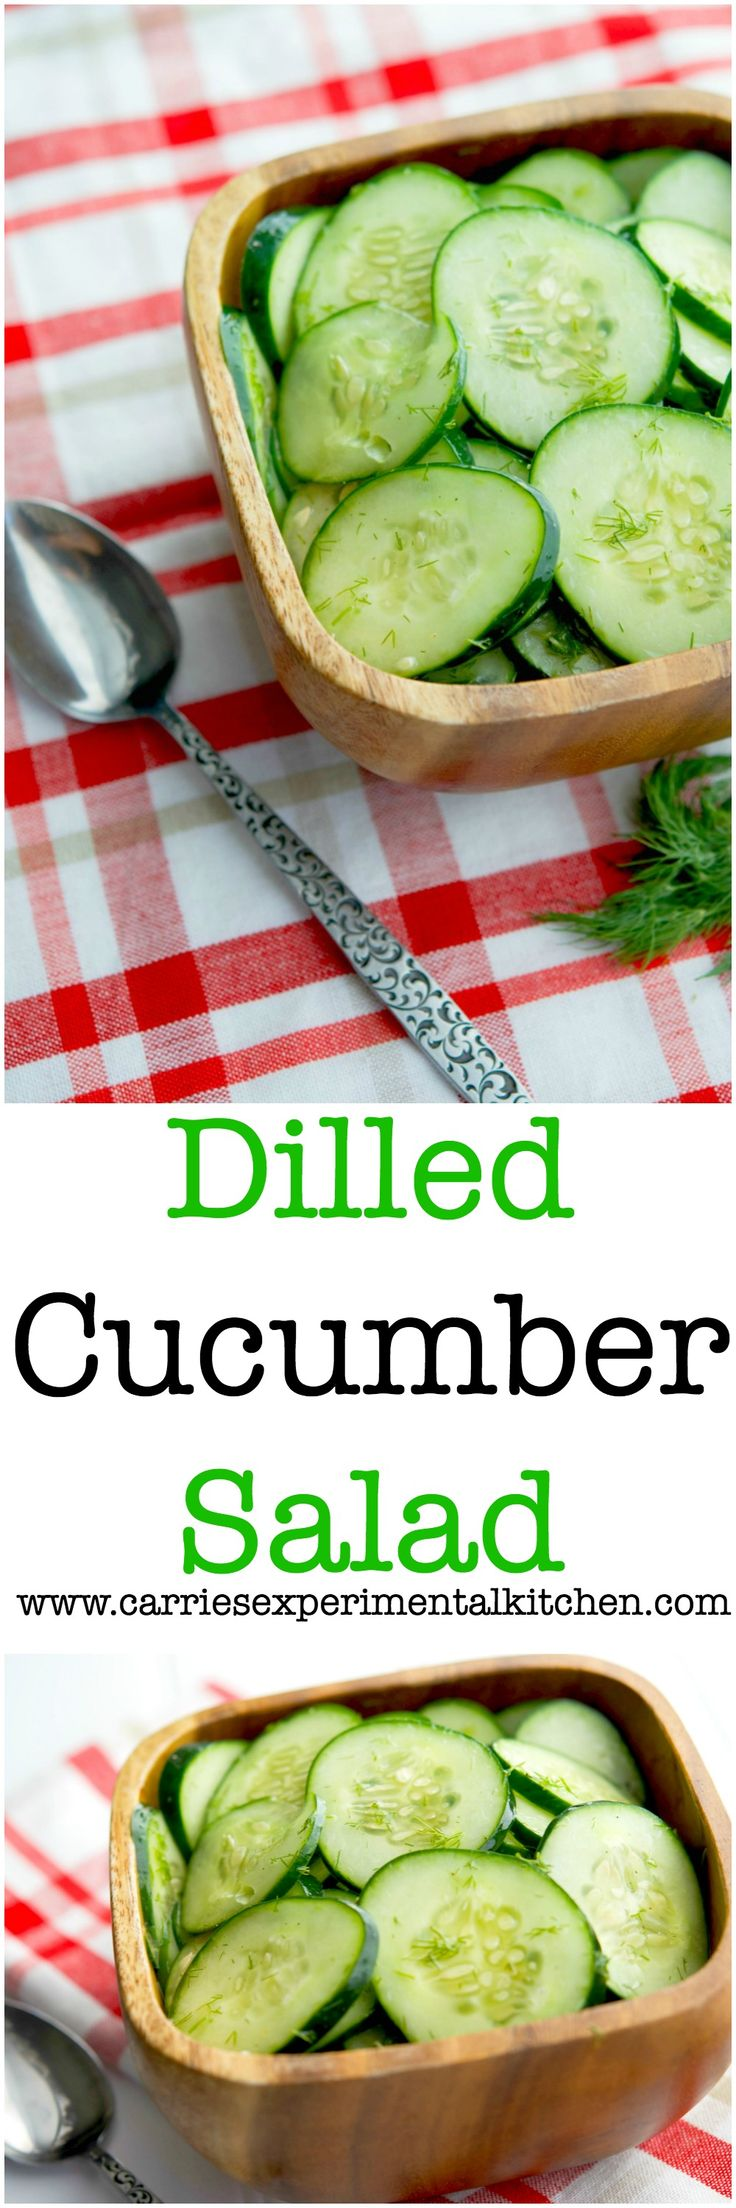 Dilled Cucumber Salad made with fresh garden cucumbers, dill, vinegar ...